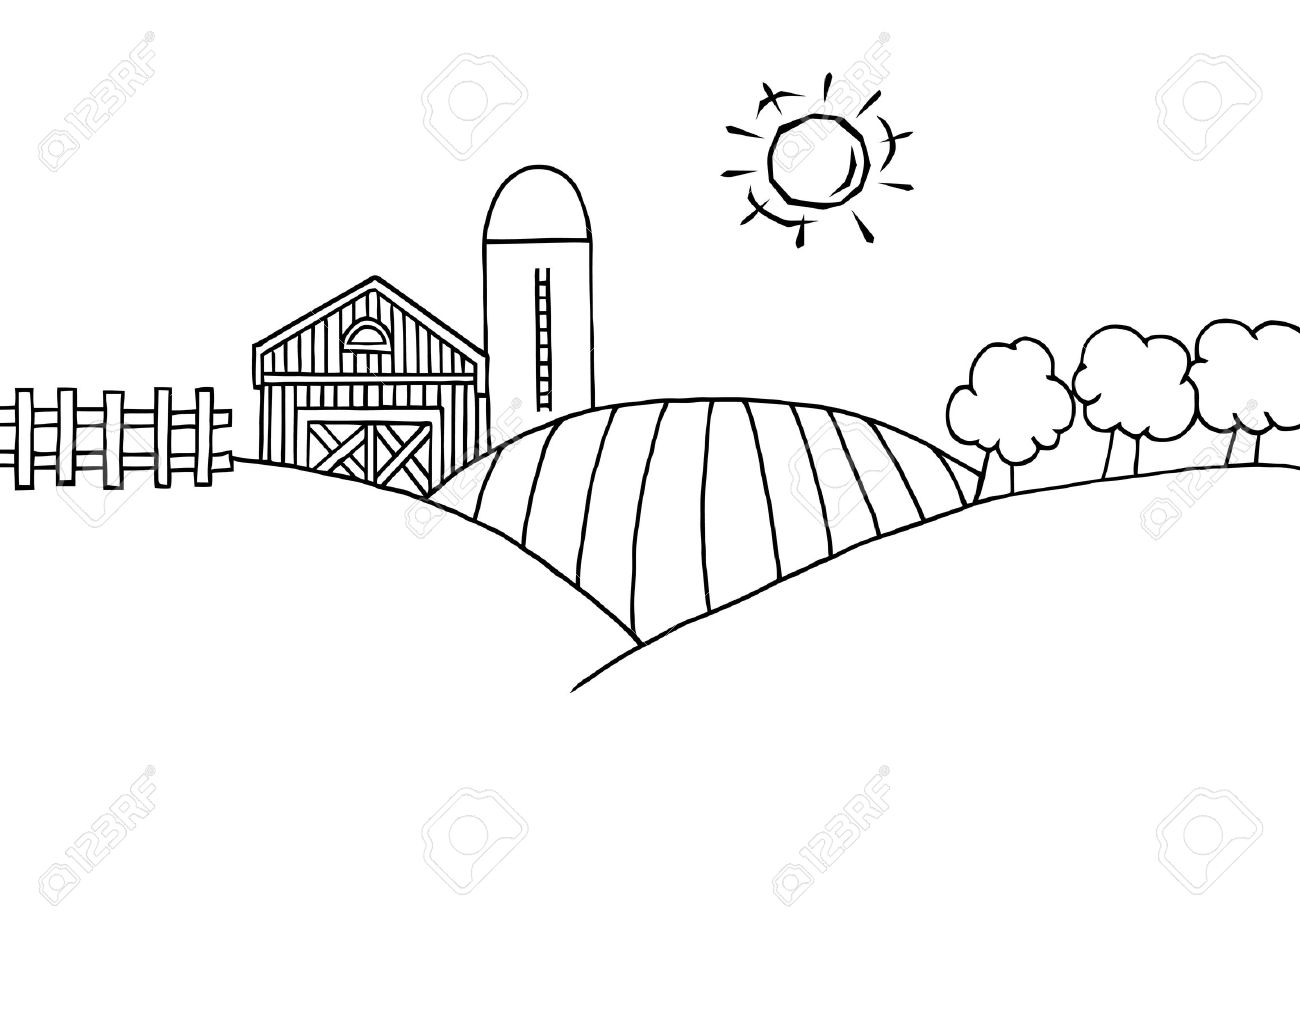 coloring page outline of rolling hills a farm and silo on farm land stock vector